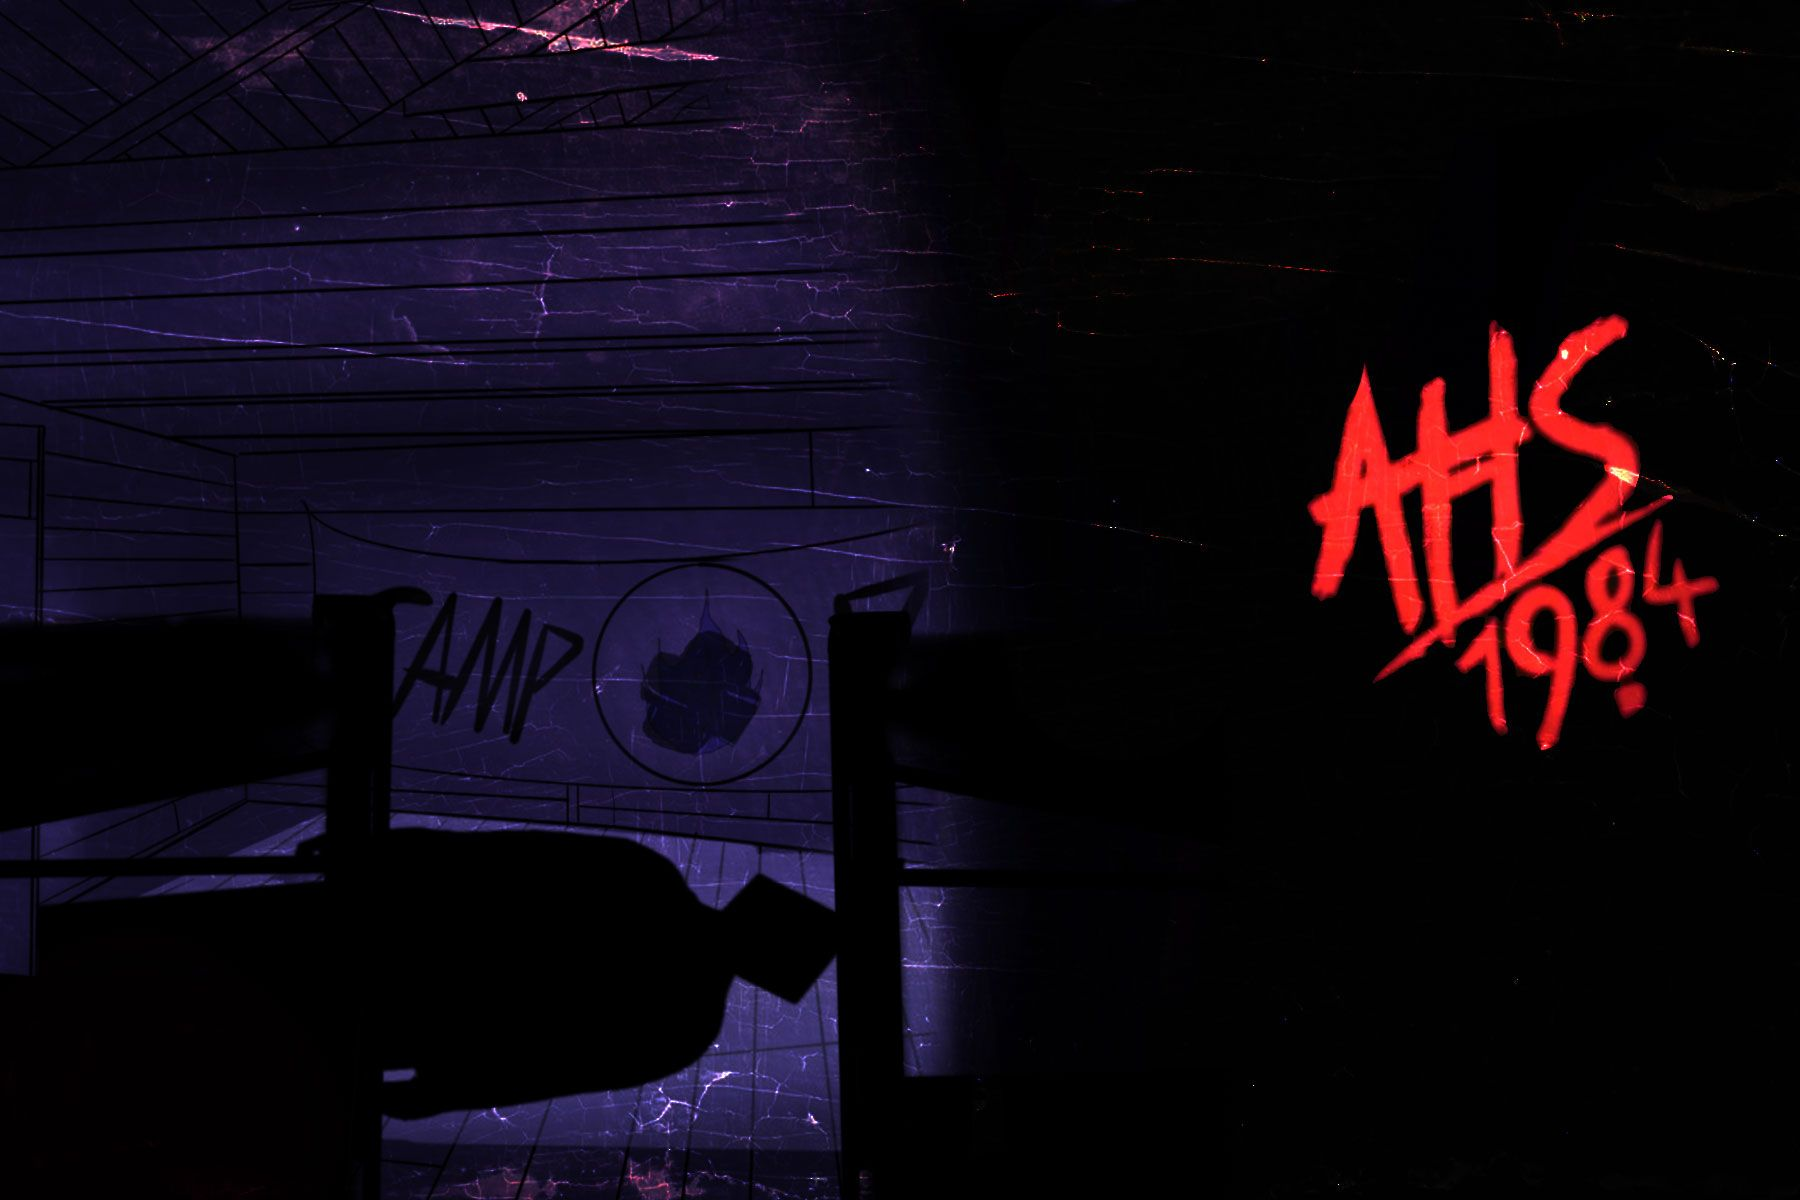 American Horror Story 1984 TV Wallpapers 68965 1800x1200px